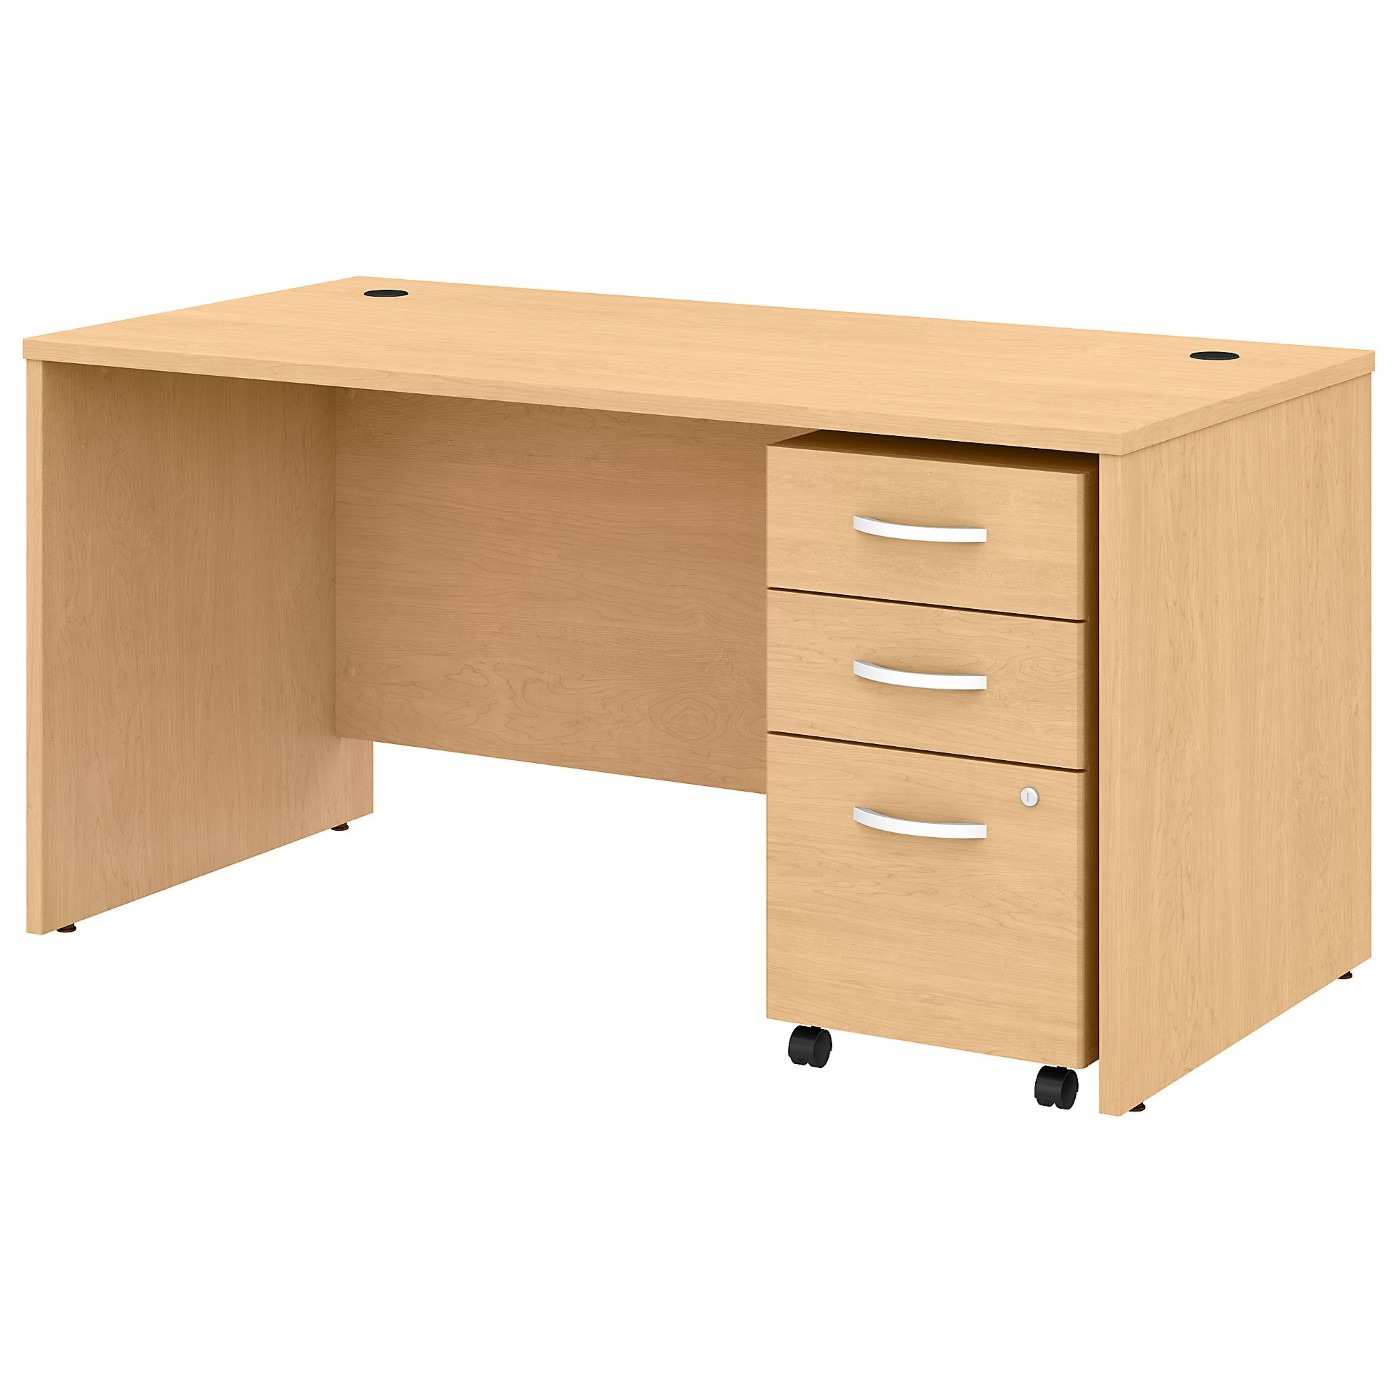 BUSH BUSINESS FURNITURE STUDIO C 60W X 30D OFFICE DESK WITH MOBILE FILE CABINET. FREE SHIPPING